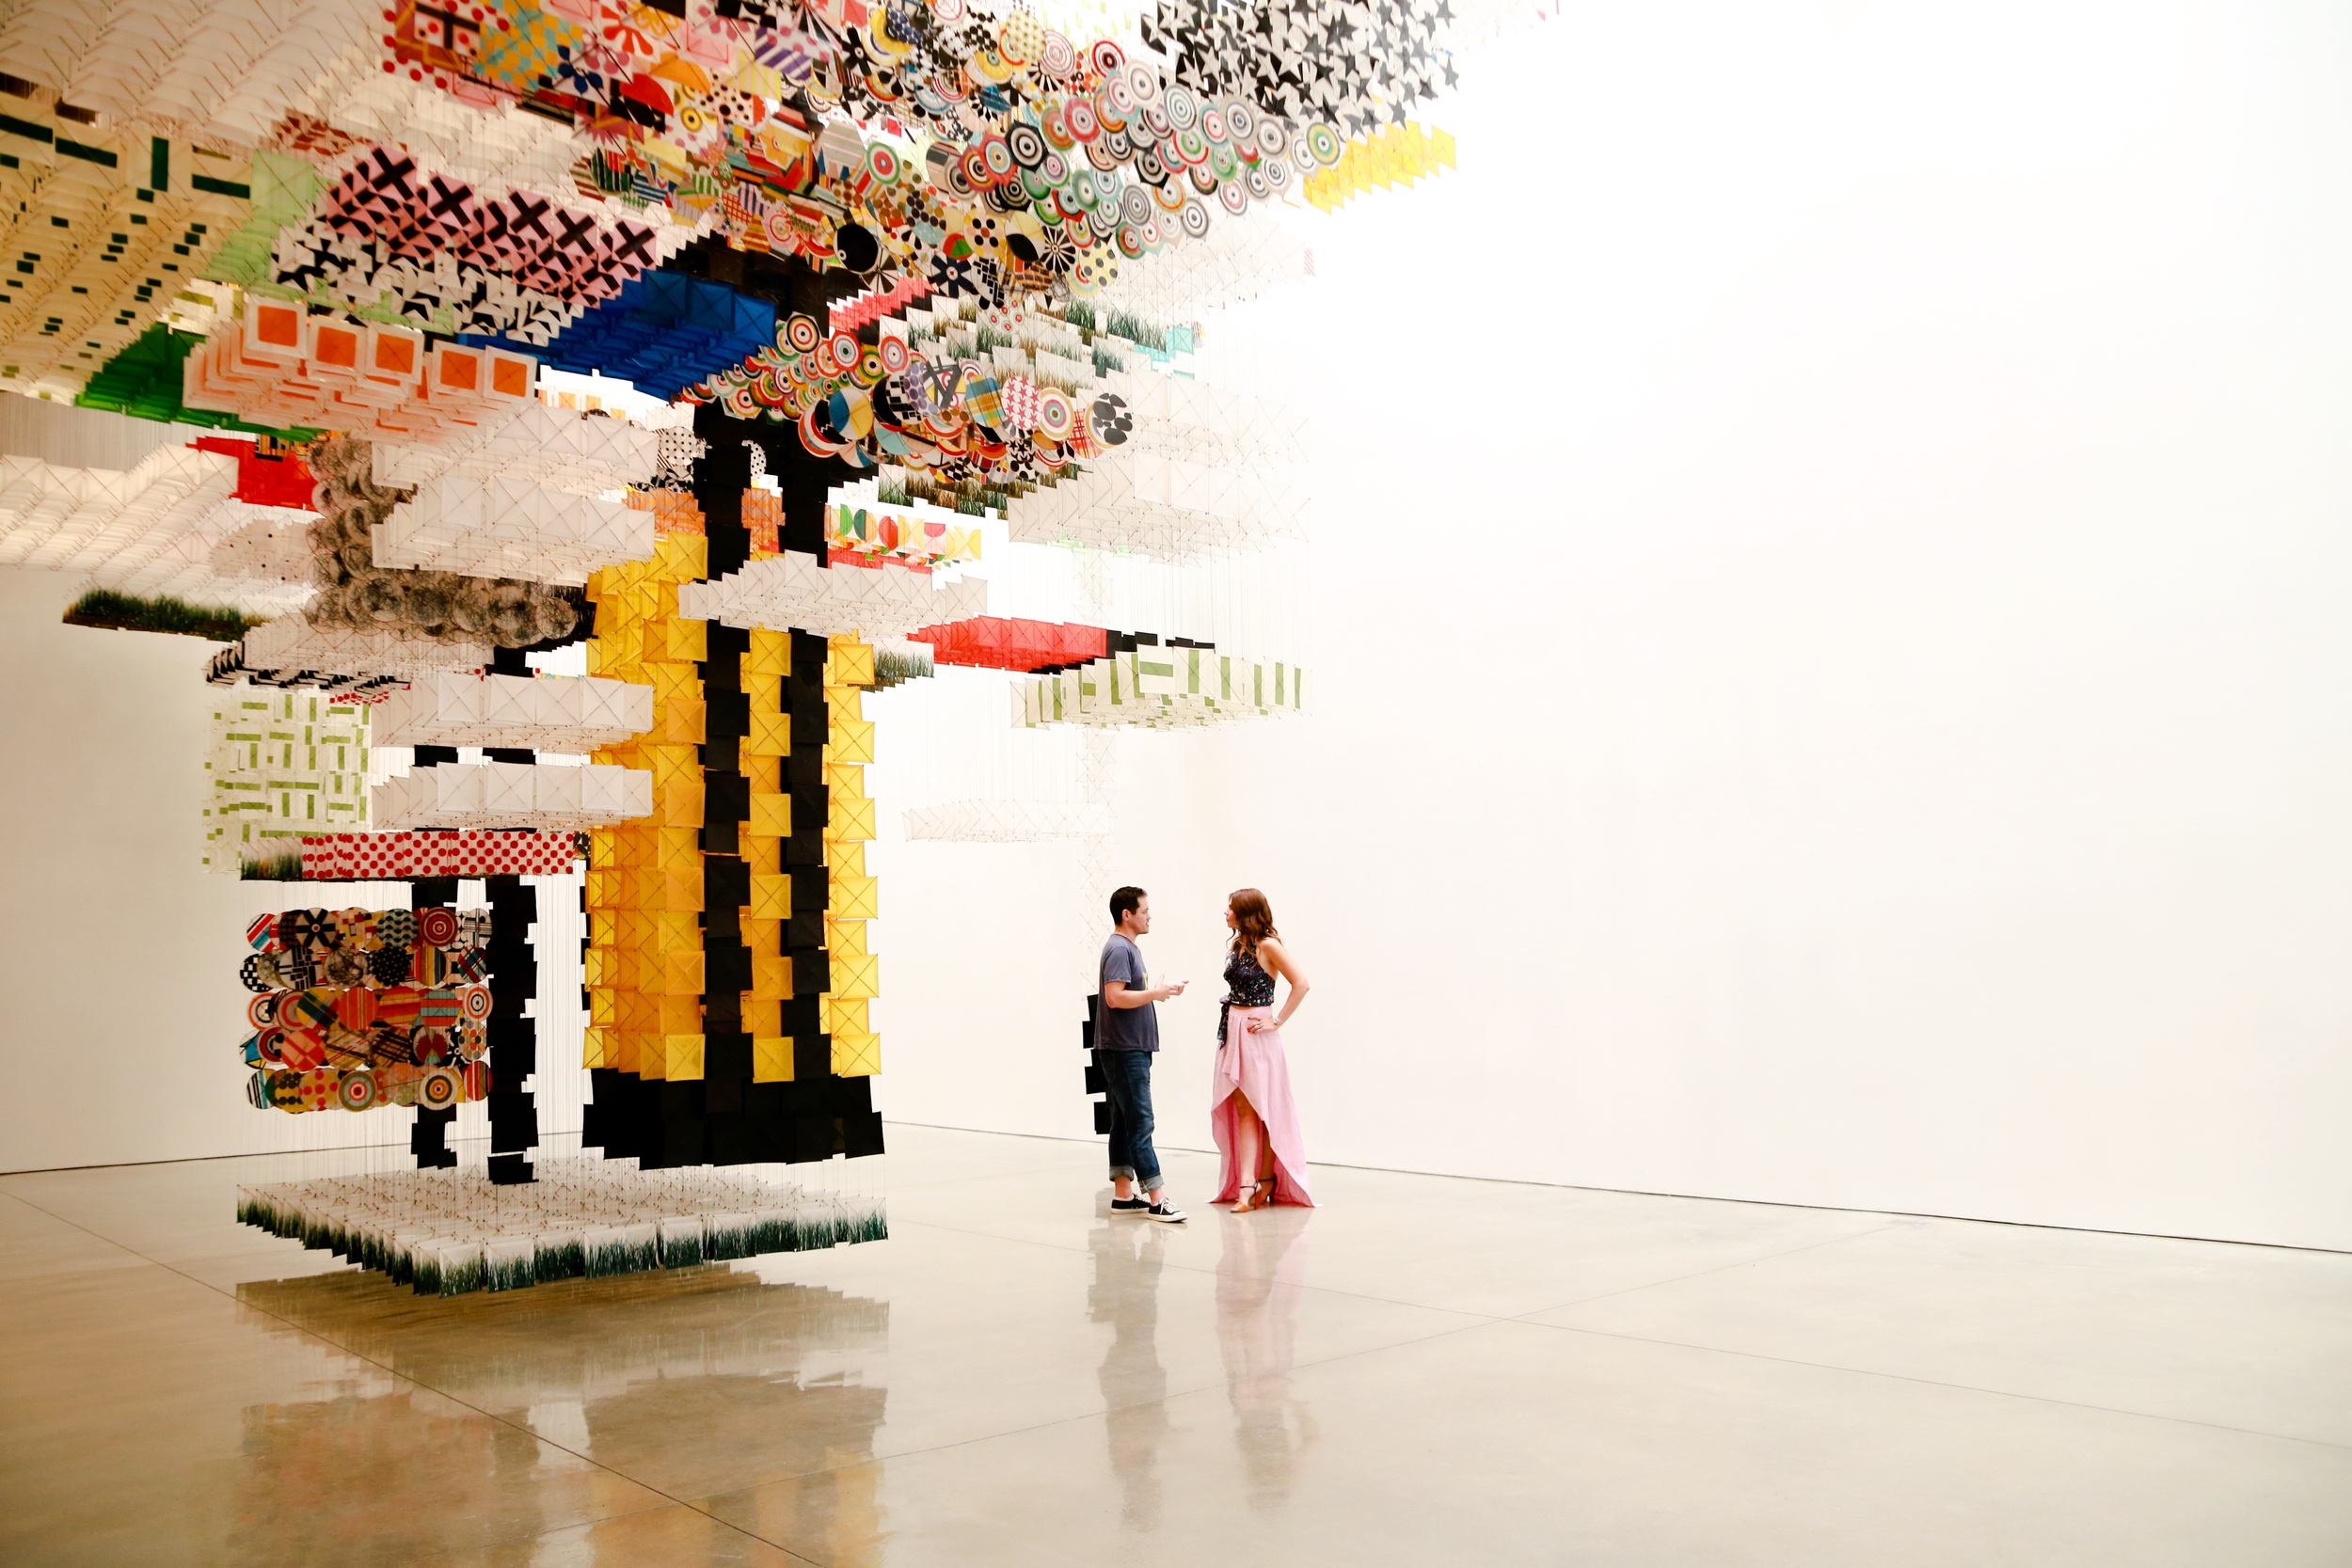 Jacob Hashimoto and I under his Skyfarm Fortress at Mary Boone Gallery on 24th Street. Pictures by Black Dot Creative.